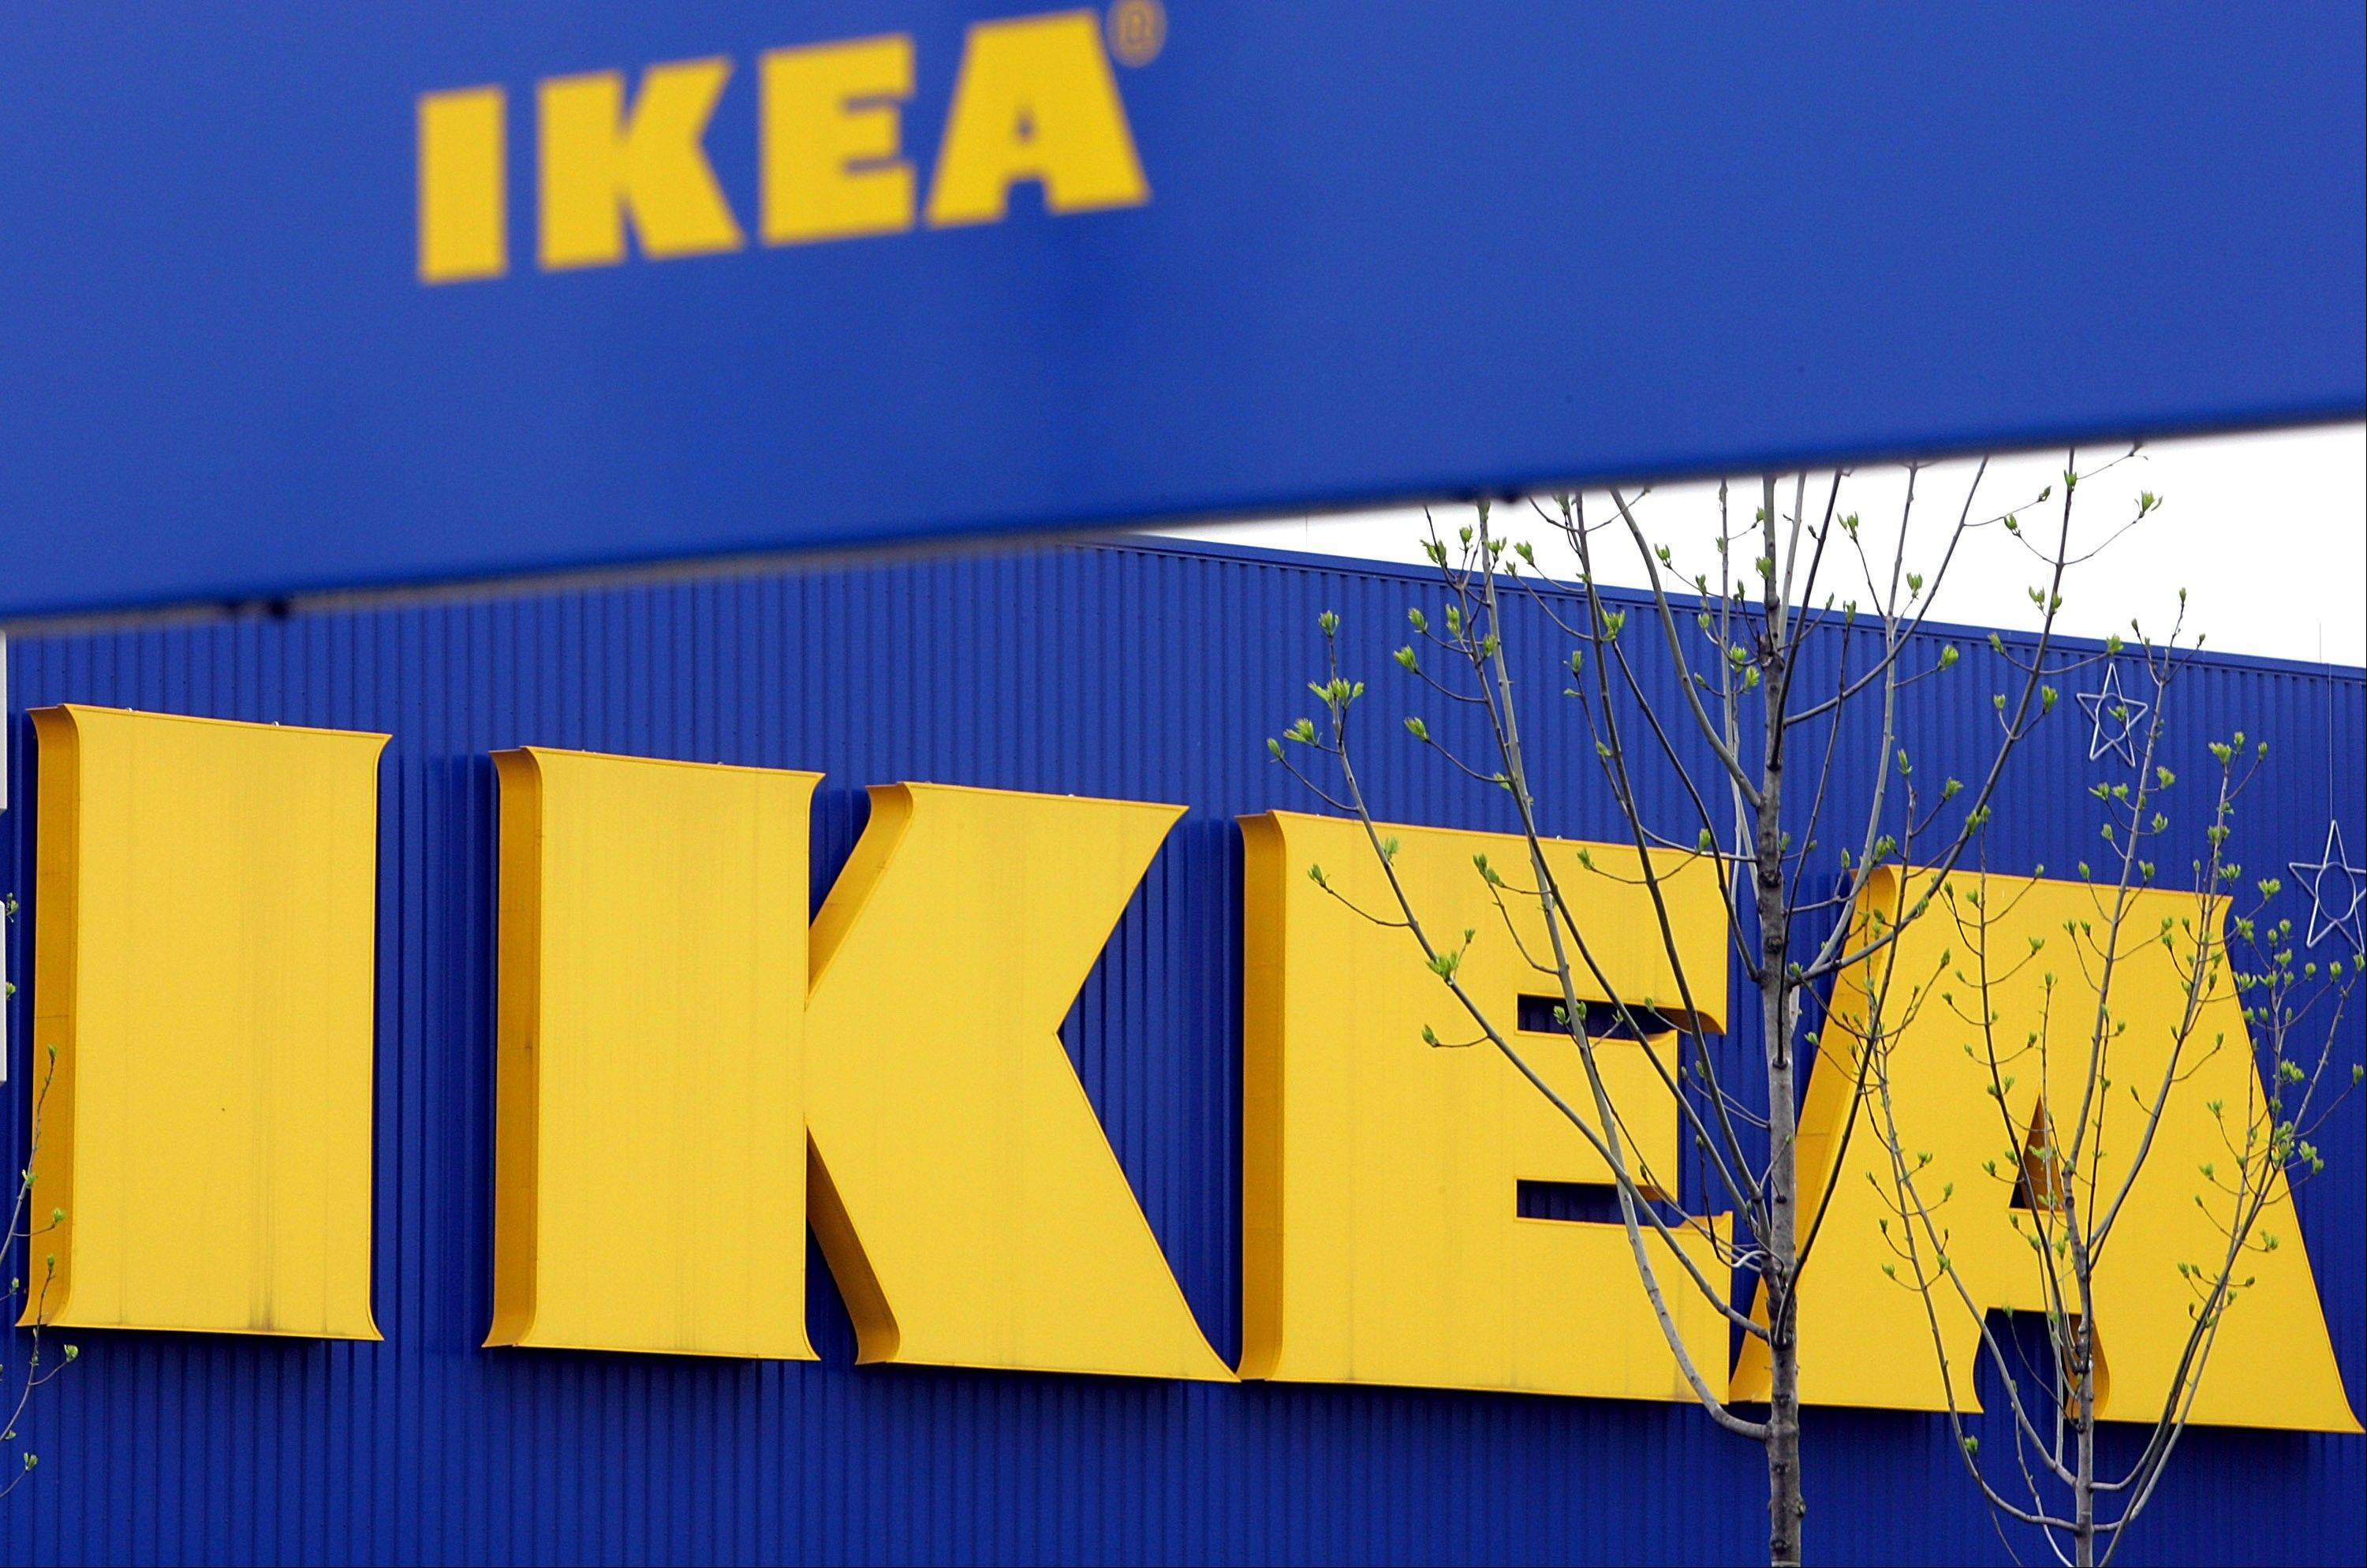 Ikea says it has withdrawn 17,000 portions of moose lasagna from its home furnishings stores in Europe after traces of pork were found in a batch tested in Belgium.